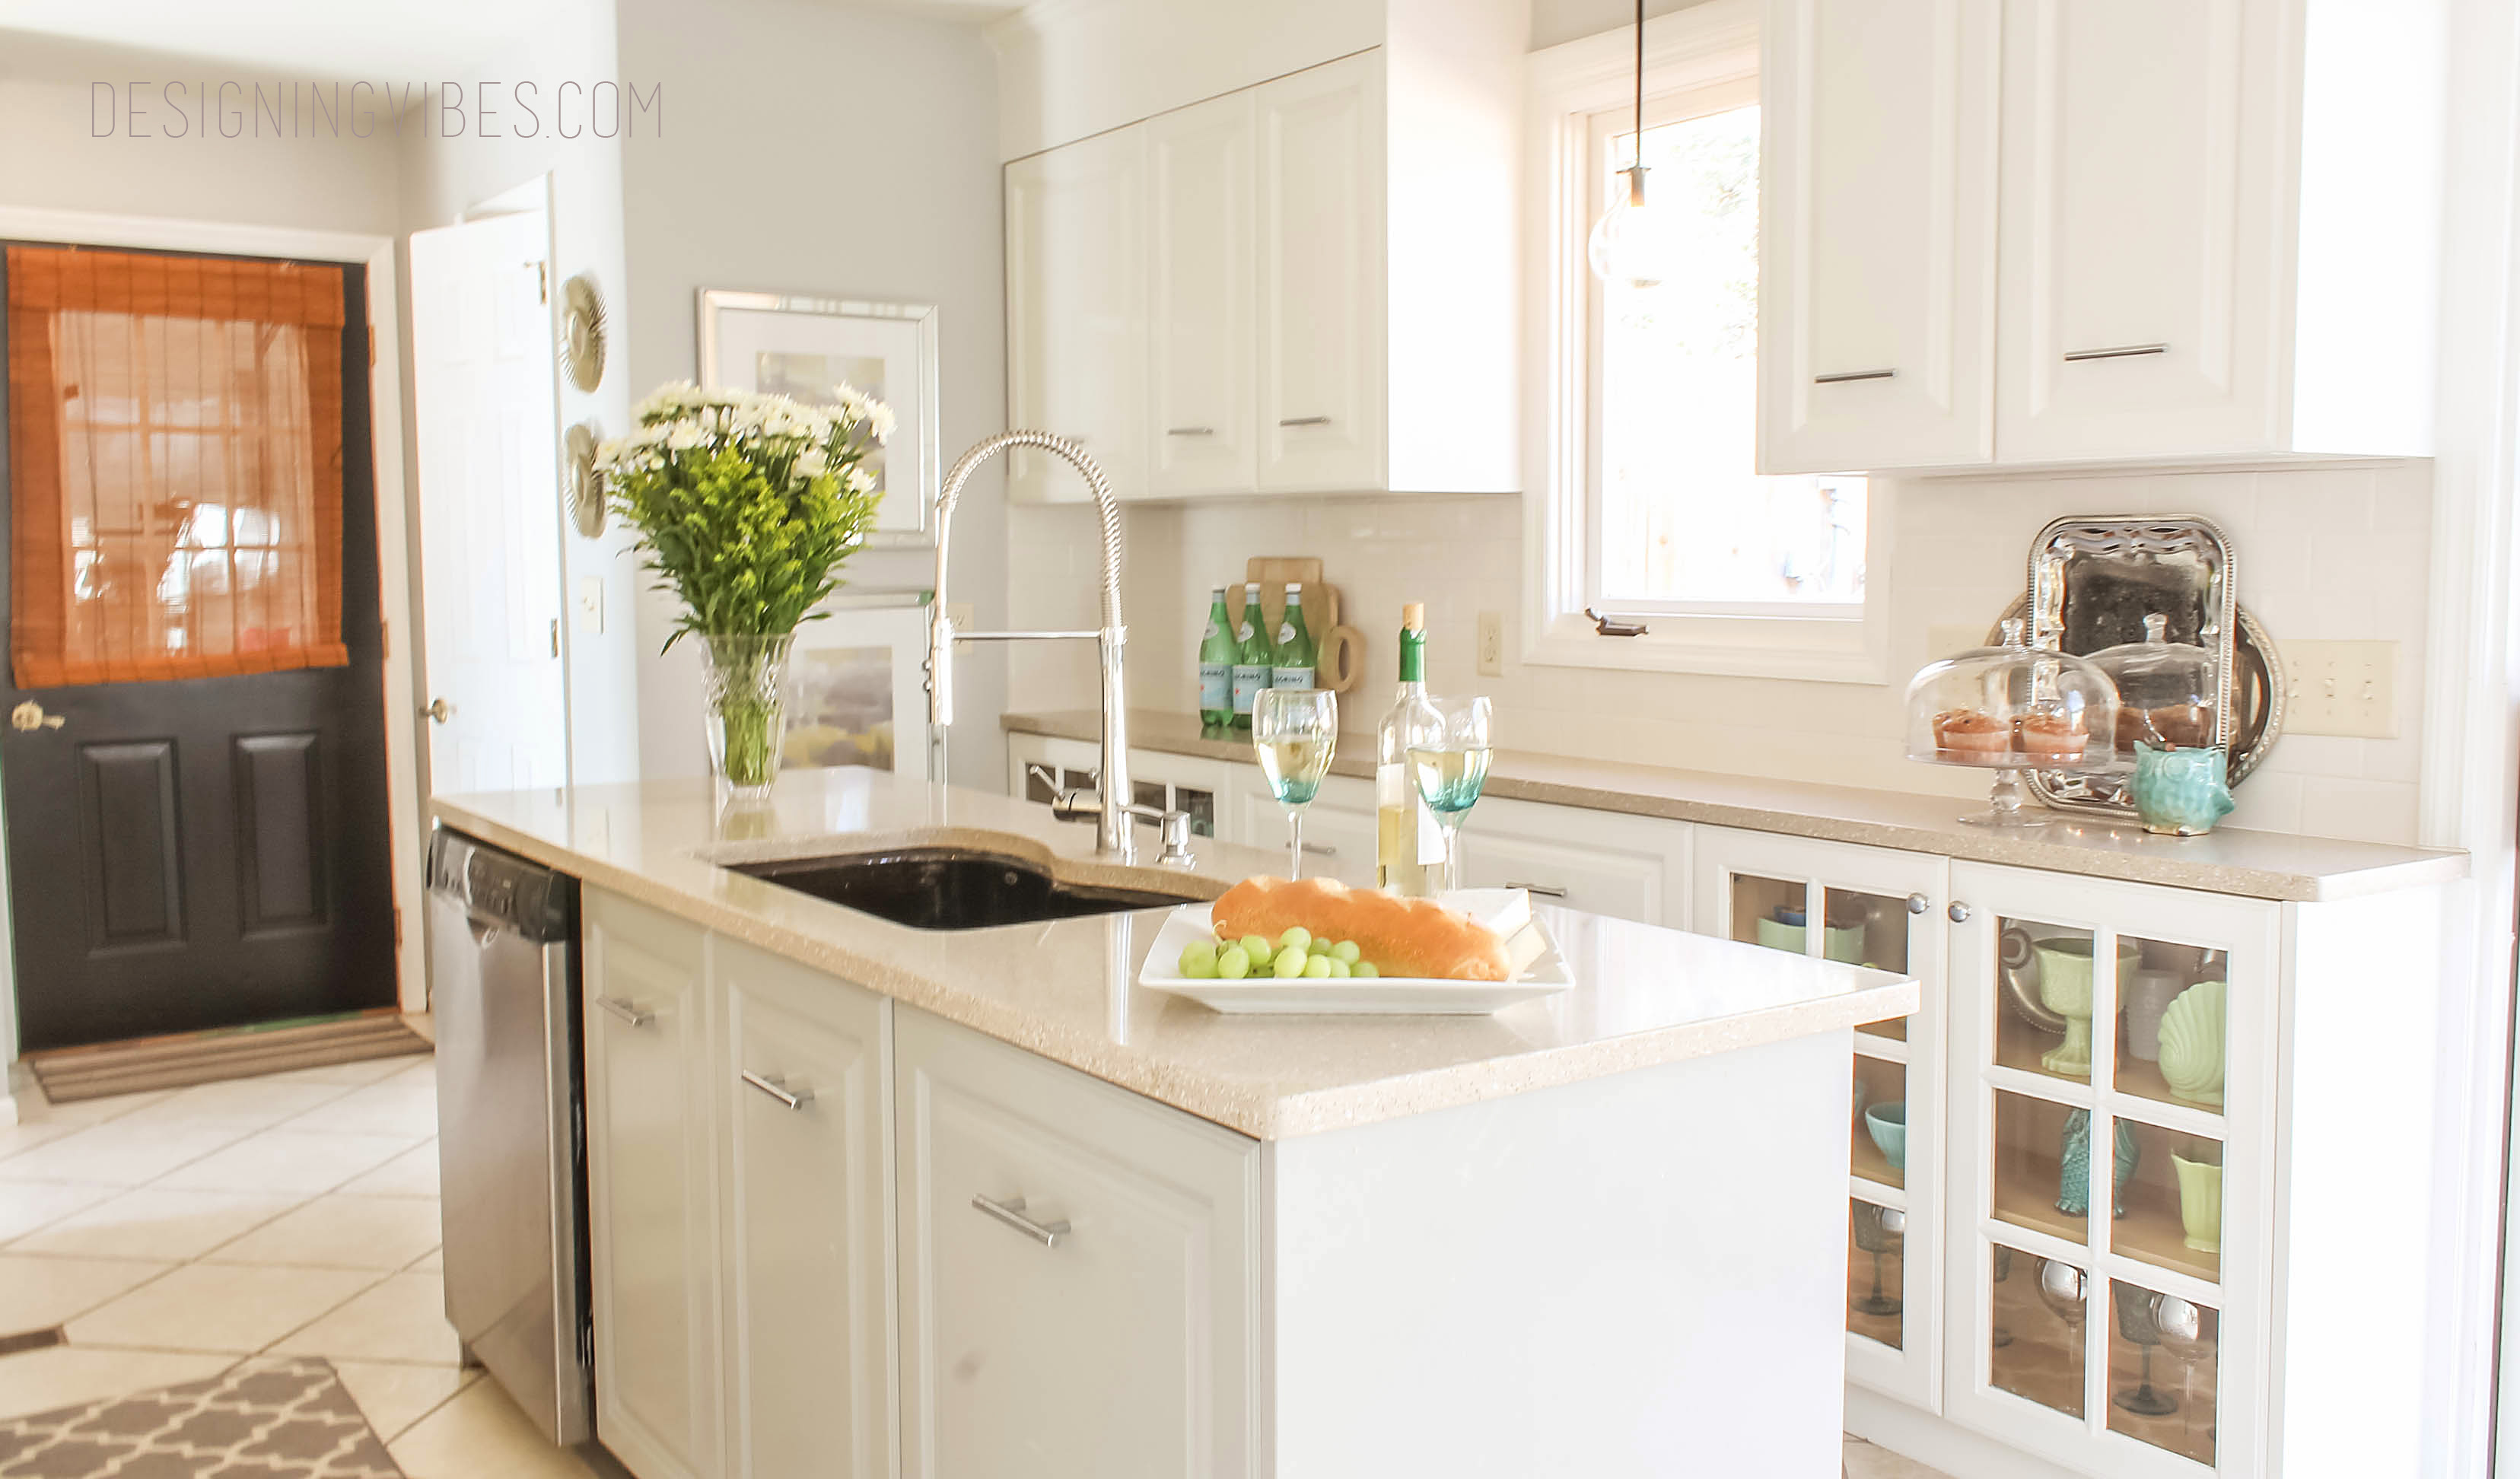 Nice We Painted The Kitchen Cabinets And Trim In A Ultra White High Gloss,  Oil Based Paint. To Break Up The White, We Went With A Medium Gray Paint  For The ... Design Ideas